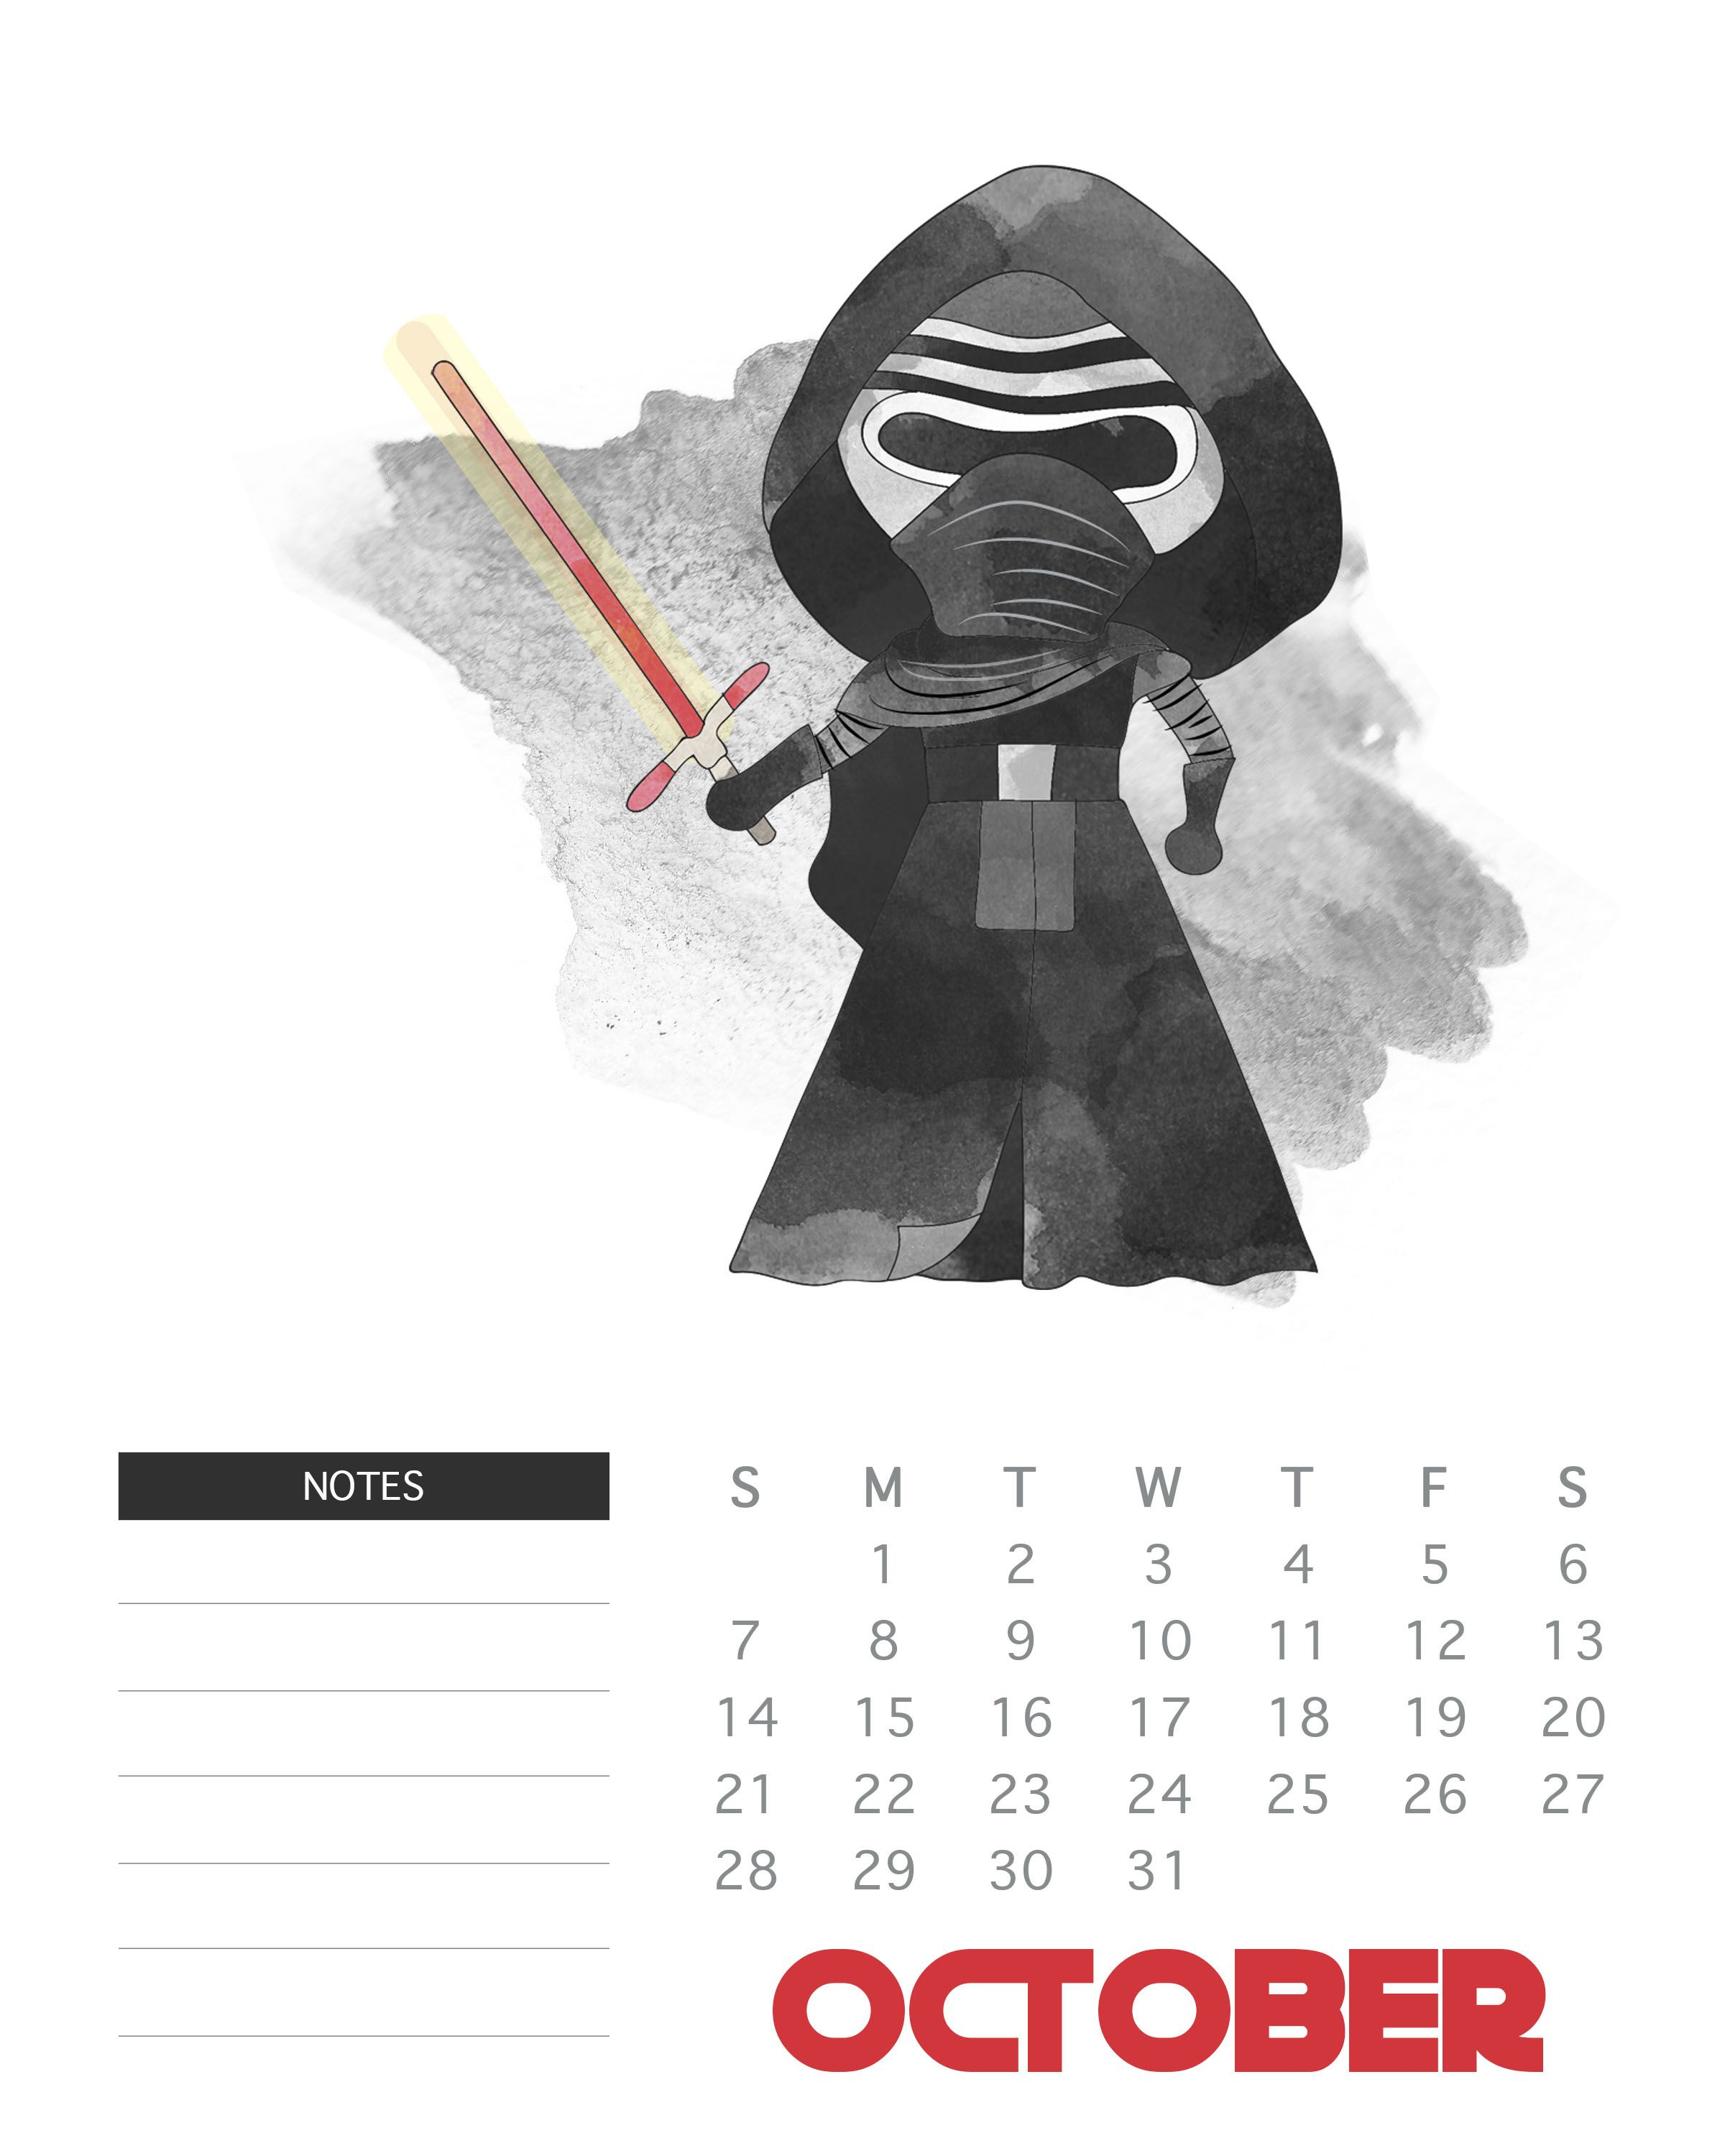 October 2018 Star Wars Calendar Template | Star Wars regarding Star Wars Calendar Printable